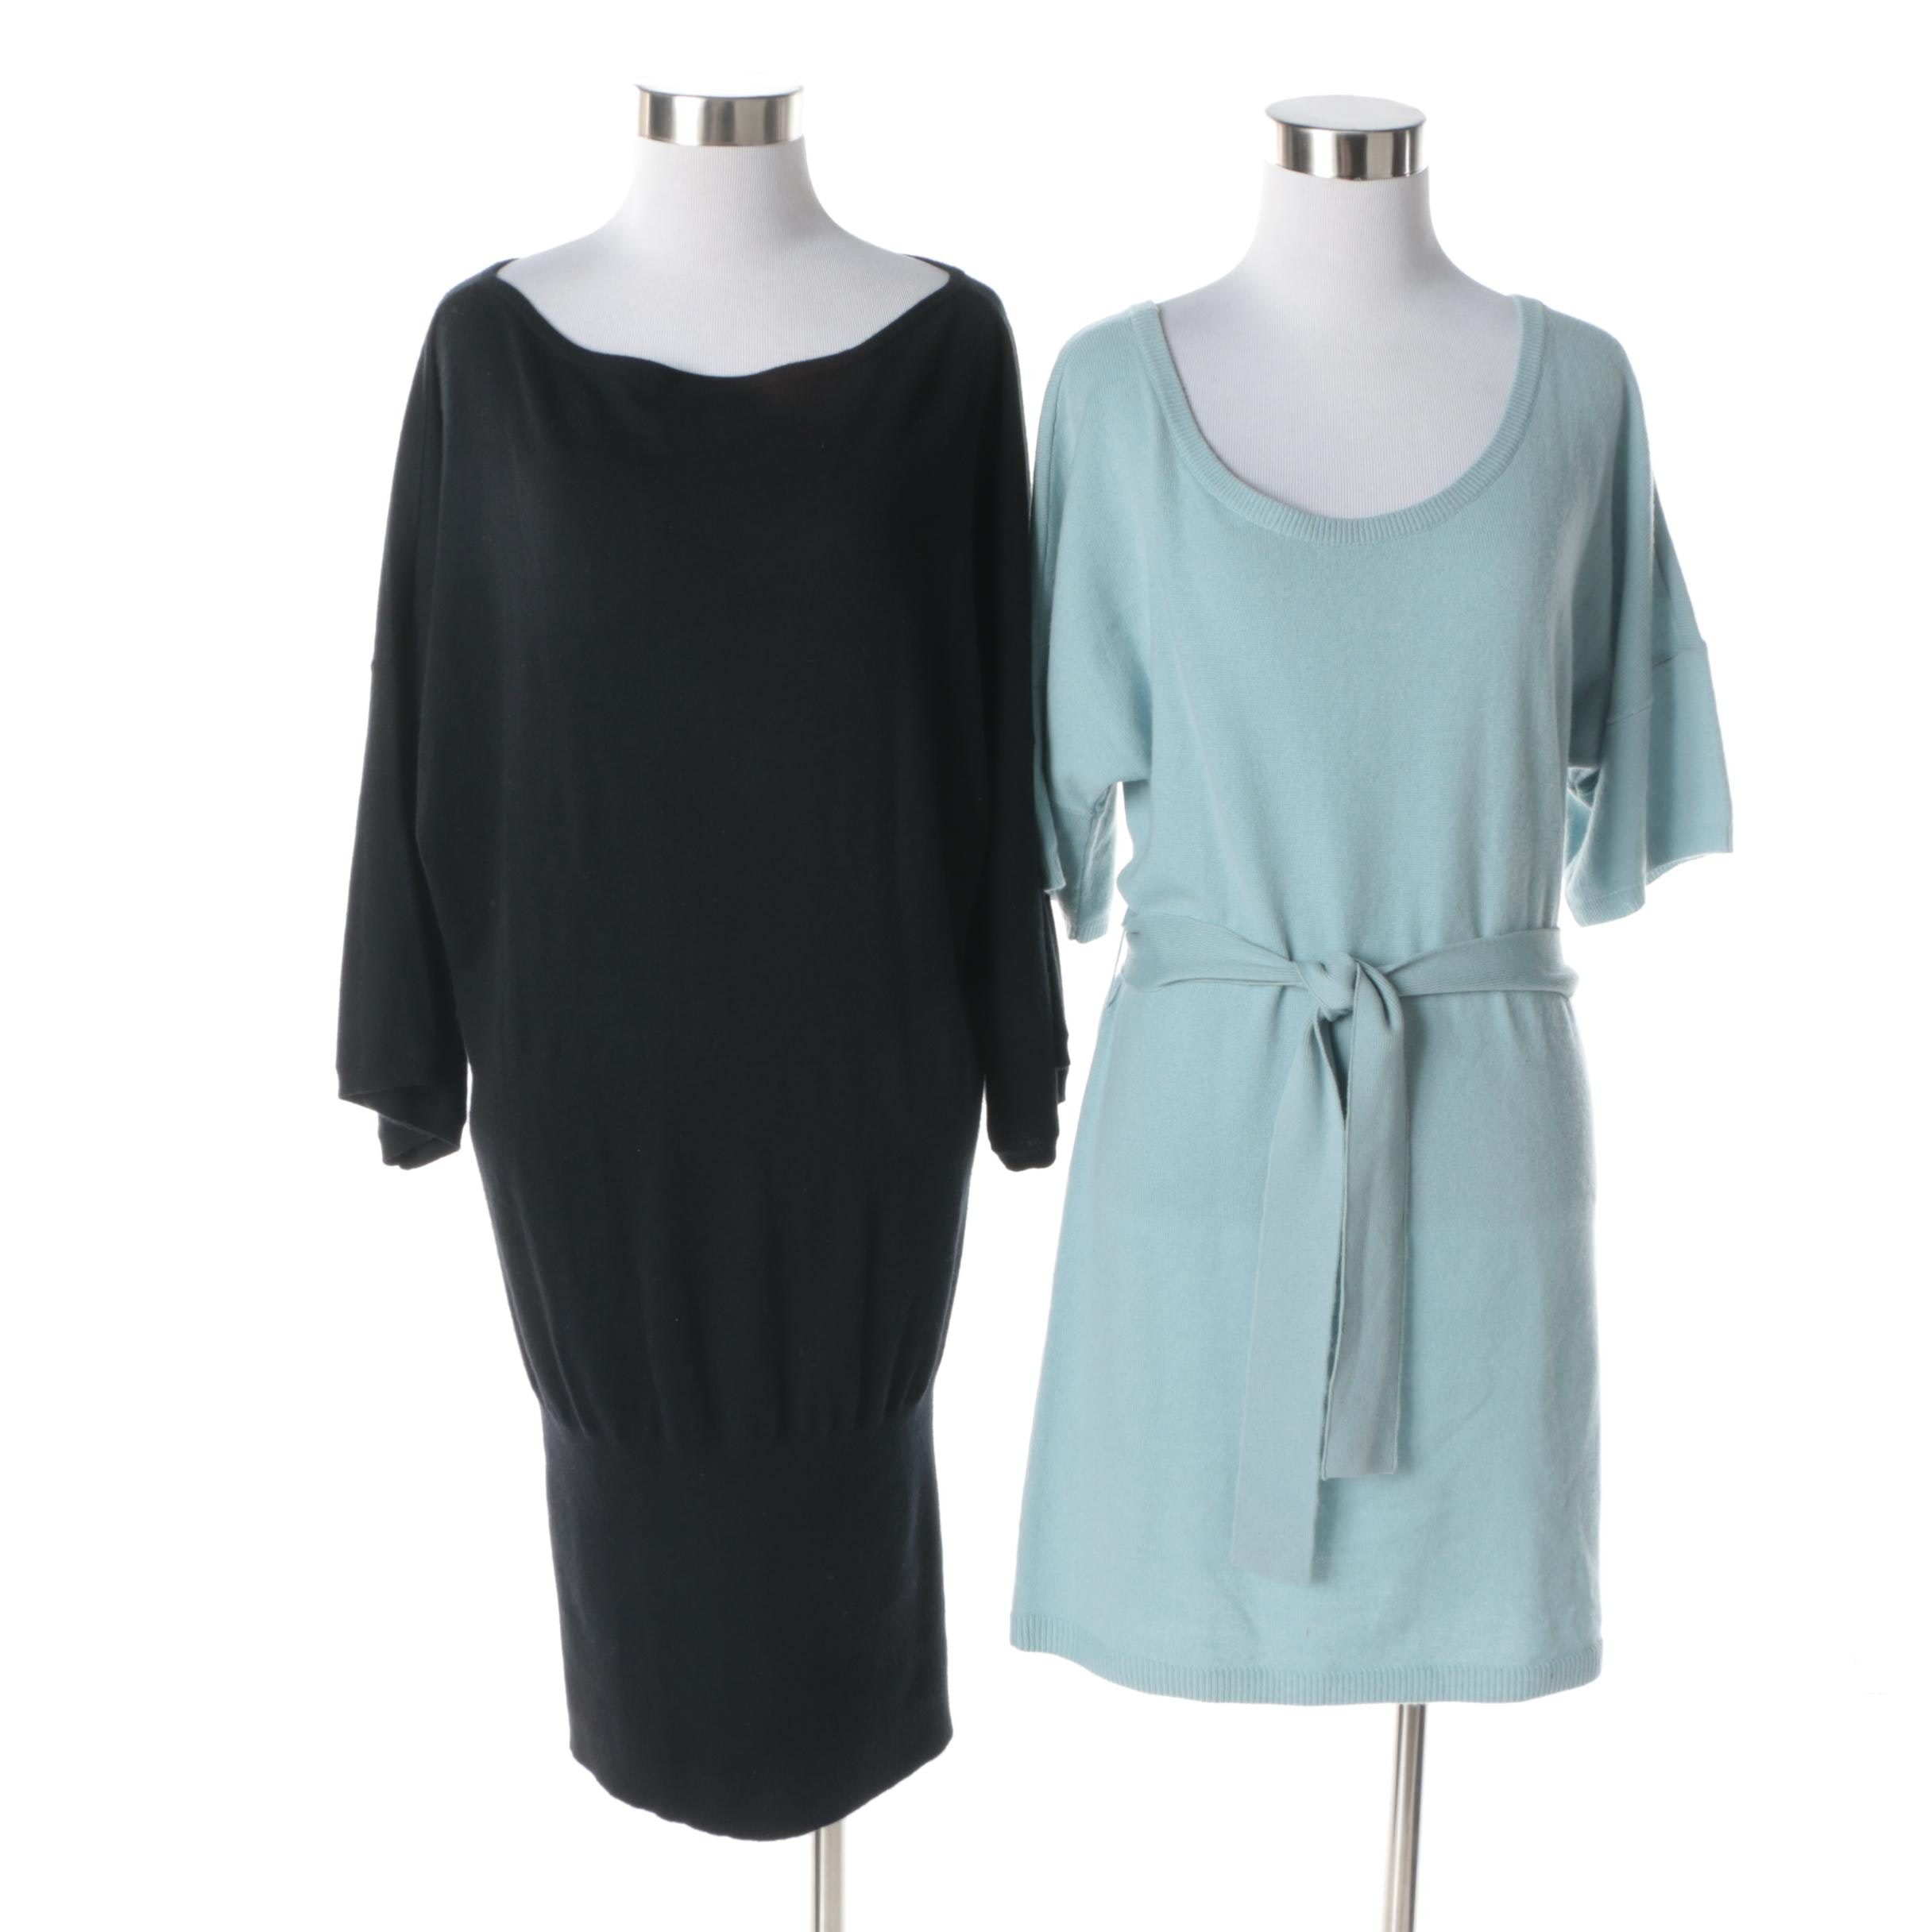 Juicy Couture Wool and Cashmere Blend Knit Sweater Dresses